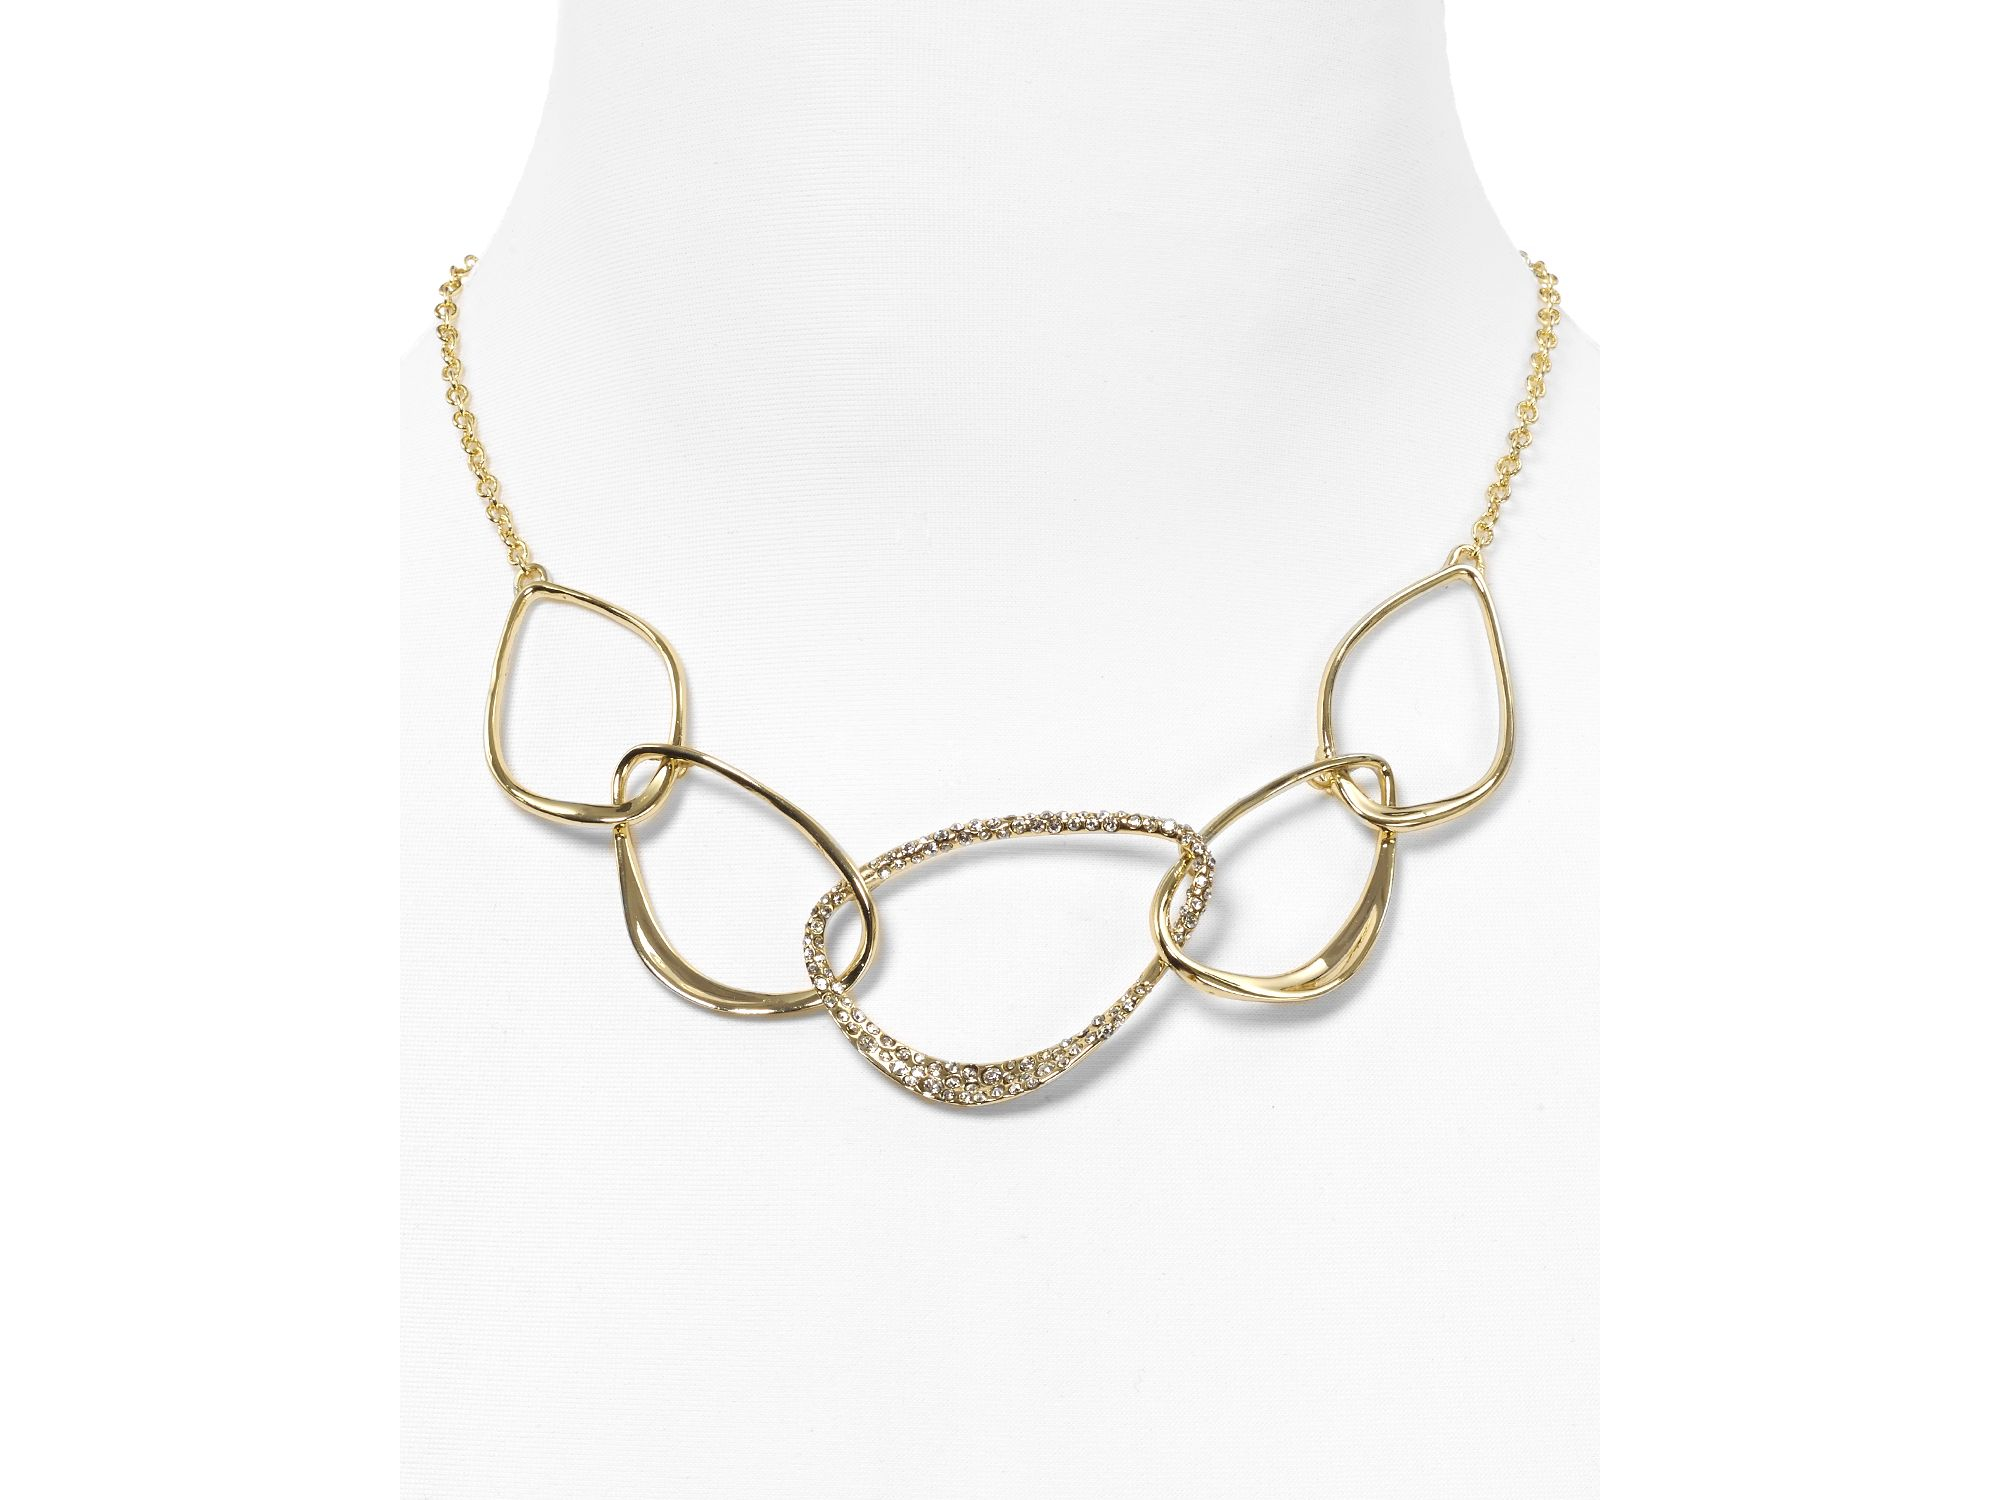 product gold alexis bittar collar reversible necklace draping chain shop